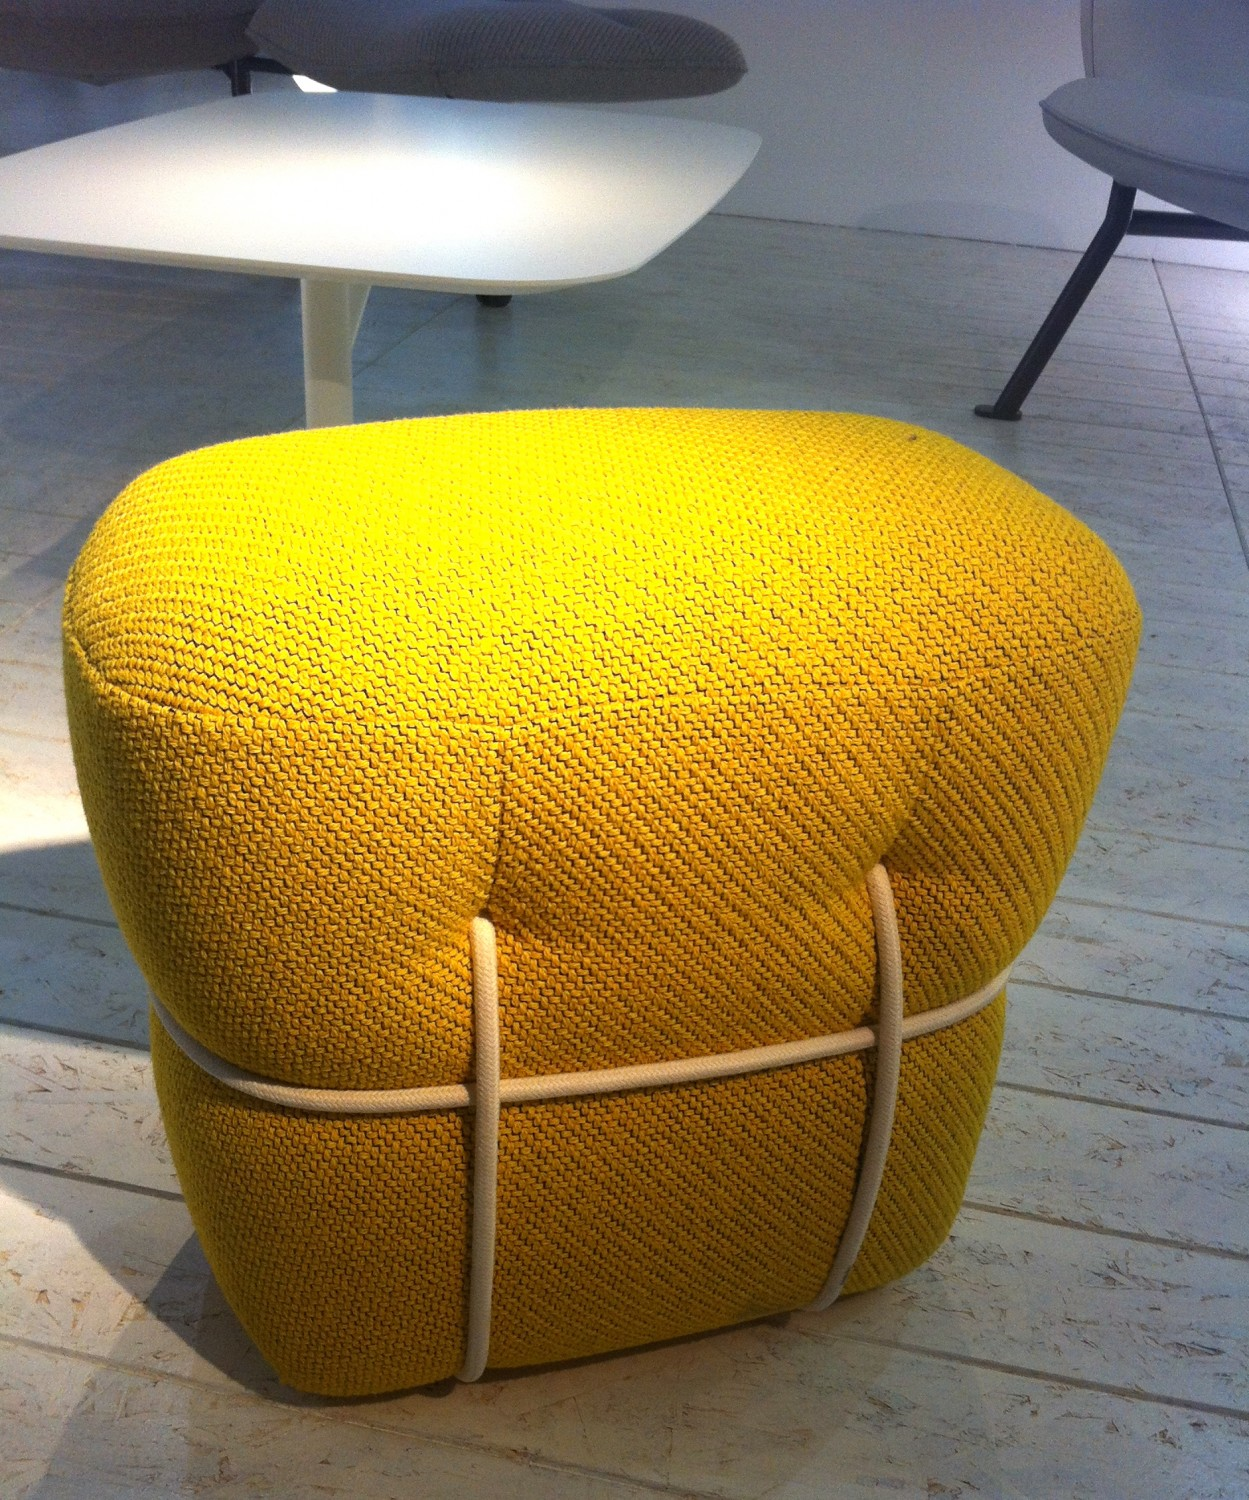 Lace stool by Benjamin Graindorge for Cinna - MaisonObjet Prix Des Decouvertes January 2013 awarded by flodeau.com 12